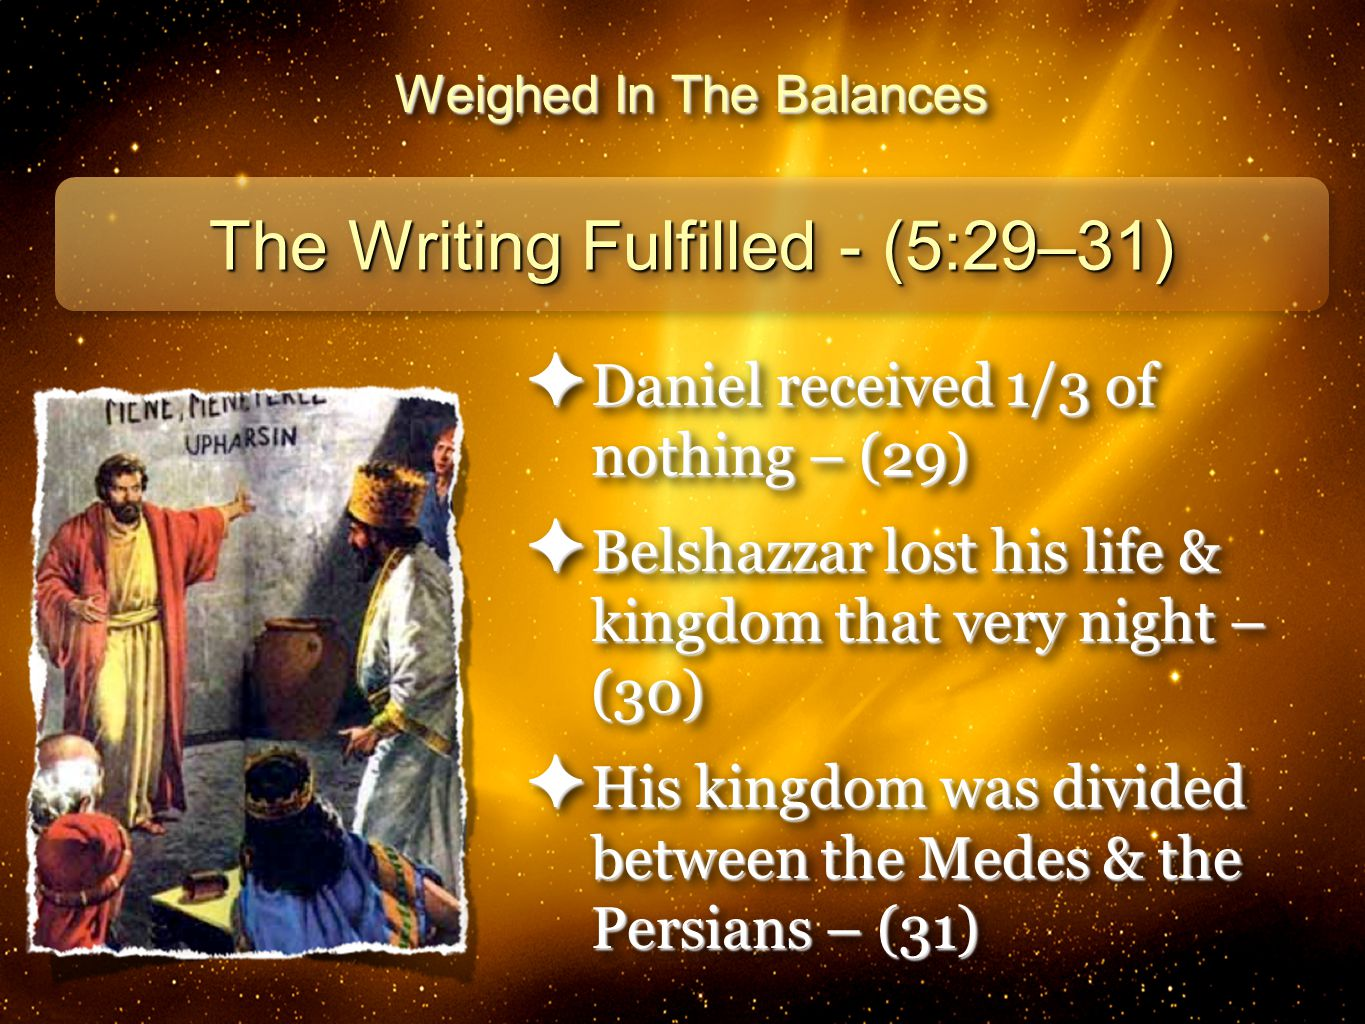 24 Weighed In The Balances The Writing Fulfilled - (5:29–31) ✦ Daniel received 1/3 of nothing – (29) ✦ Belshazzar lost his life & kingdom that very night – (30) ✦ His kingdom was divided between the Medes & the Persians – (31) ✦ Daniel received 1/3 of nothing – (29) ✦ Belshazzar lost his life & kingdom that very night – (30) ✦ His kingdom was divided between the Medes & the Persians – (31)